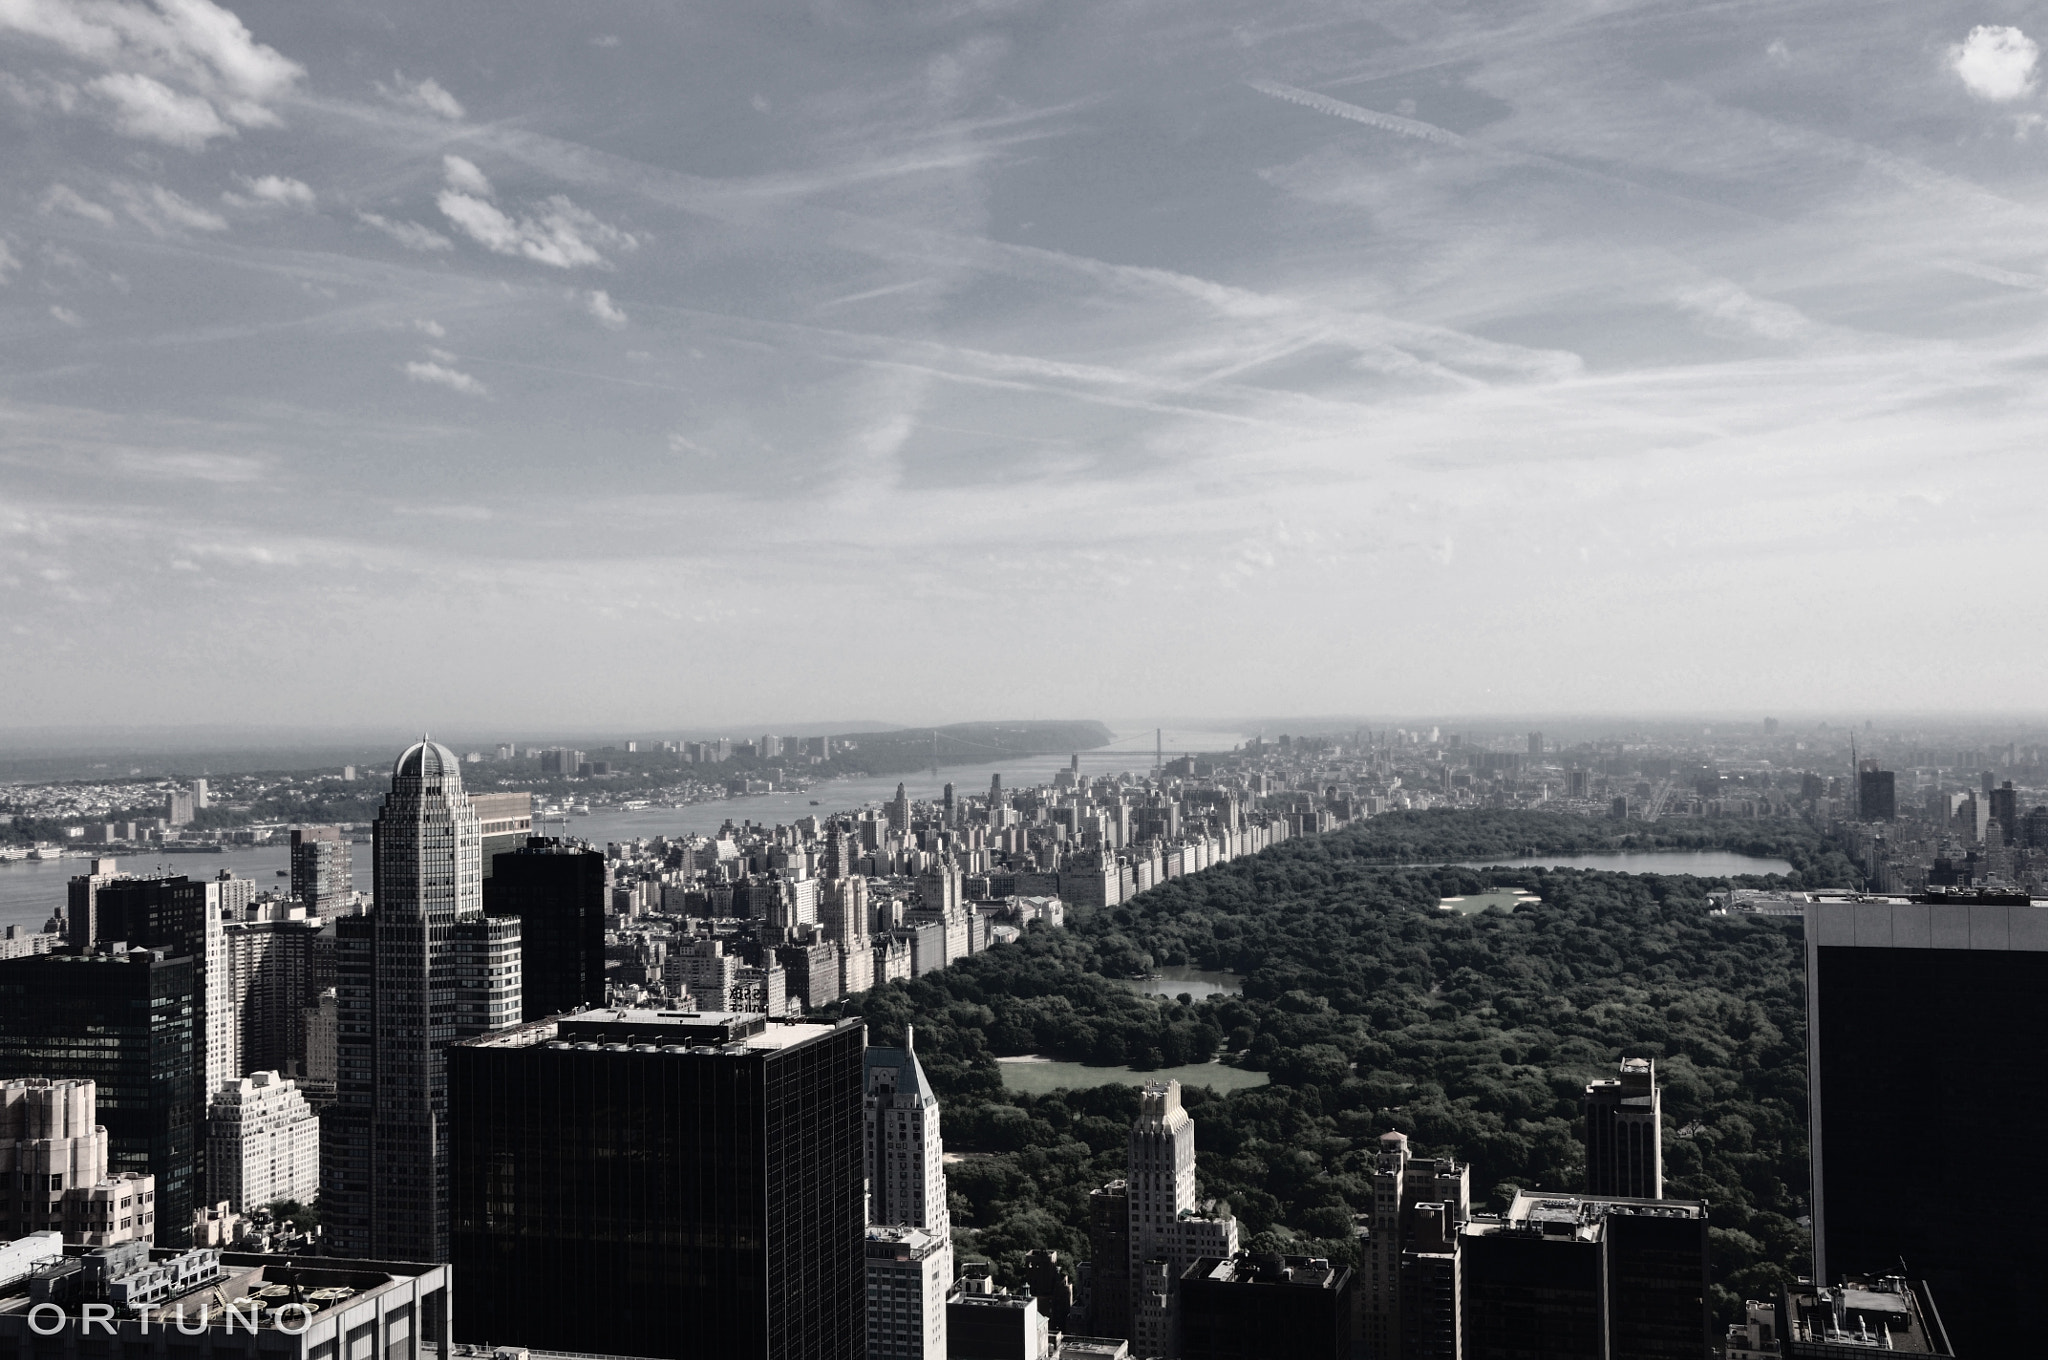 Photograph CENTRAL PARK by OLIVIA FUENTES ORTUÑO on 500px